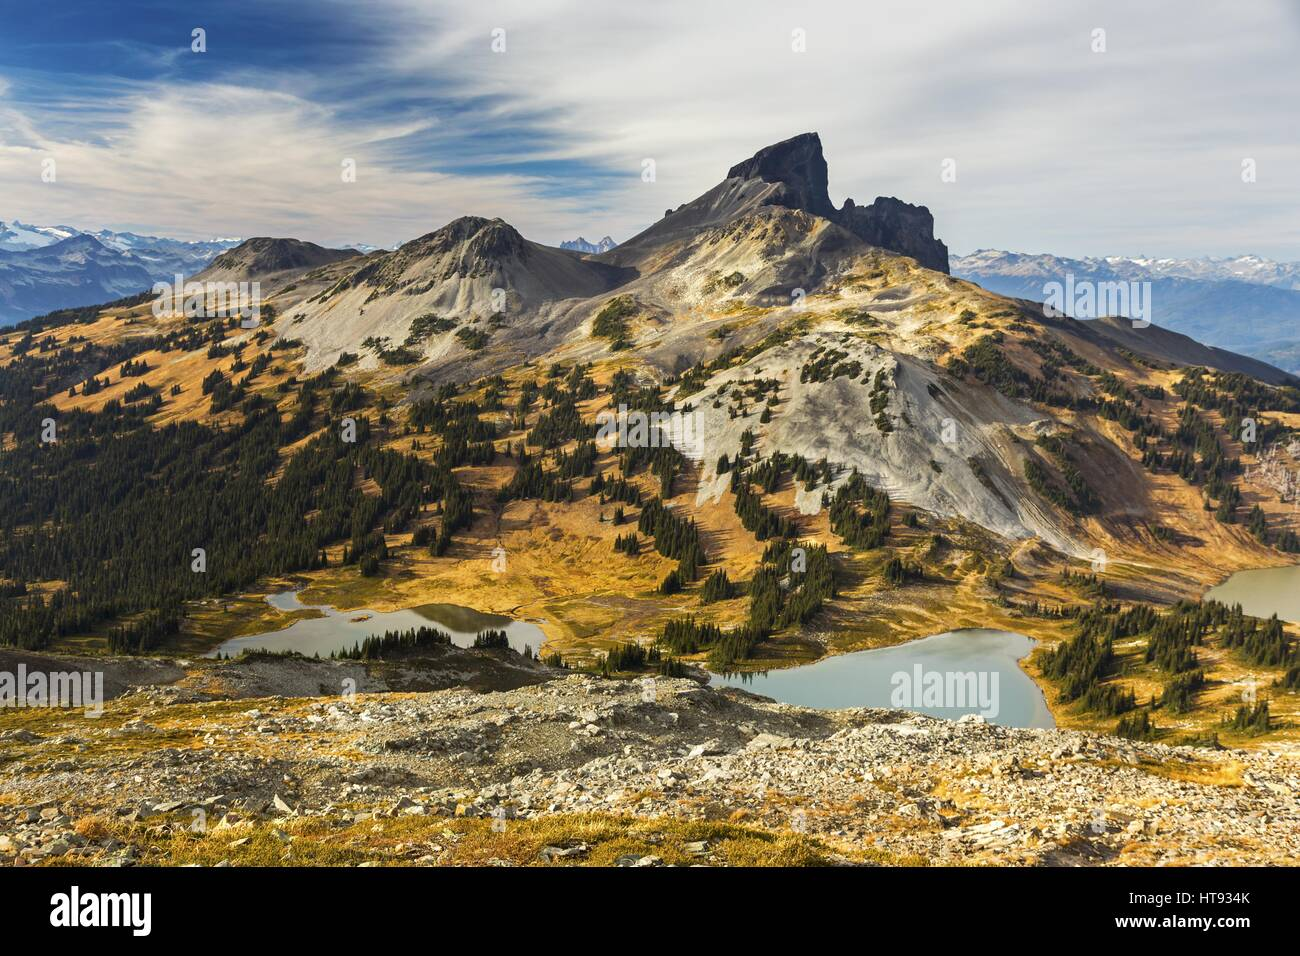 black-tusk-mountain-top-and-scenic-lands